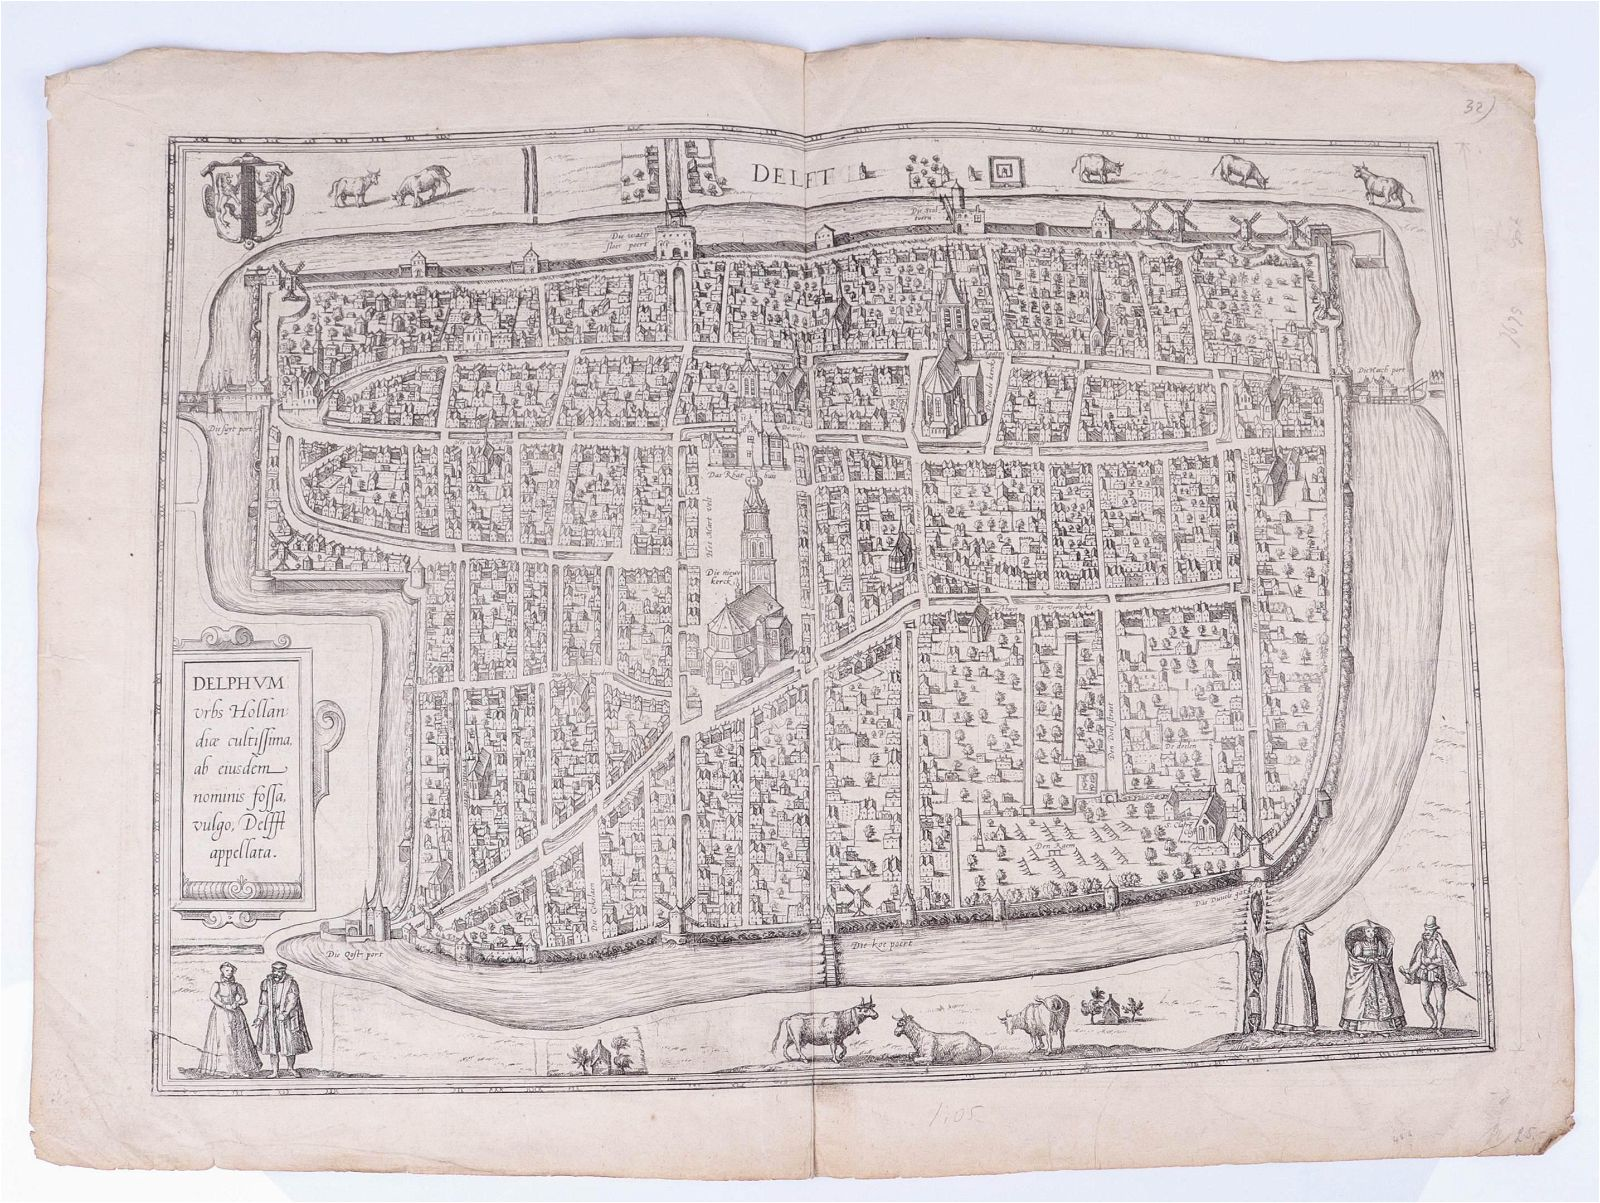 Early Engraved Map of Delft